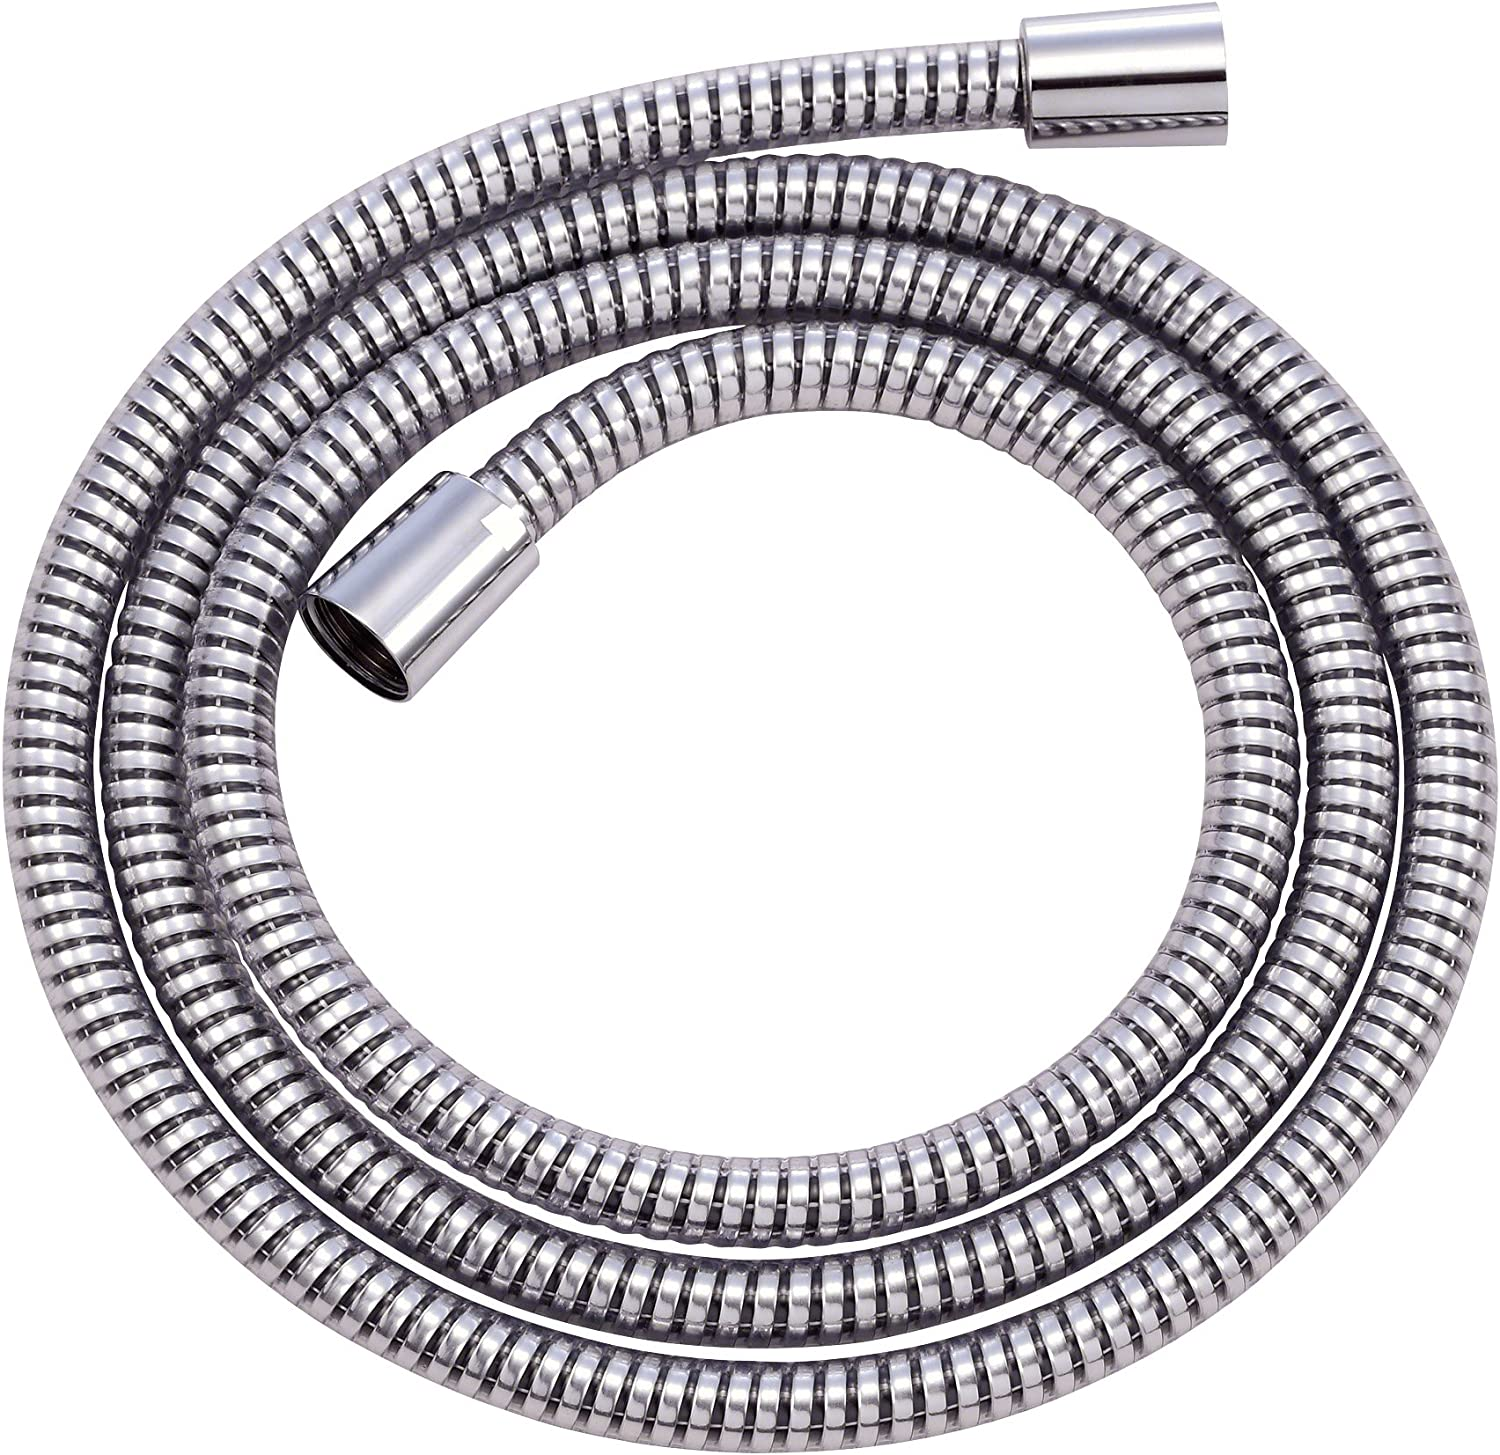 Danze Same day shipping D469030 M-Flex Shower Hose Nuts Conical 72-Inc with Brass Memphis Mall